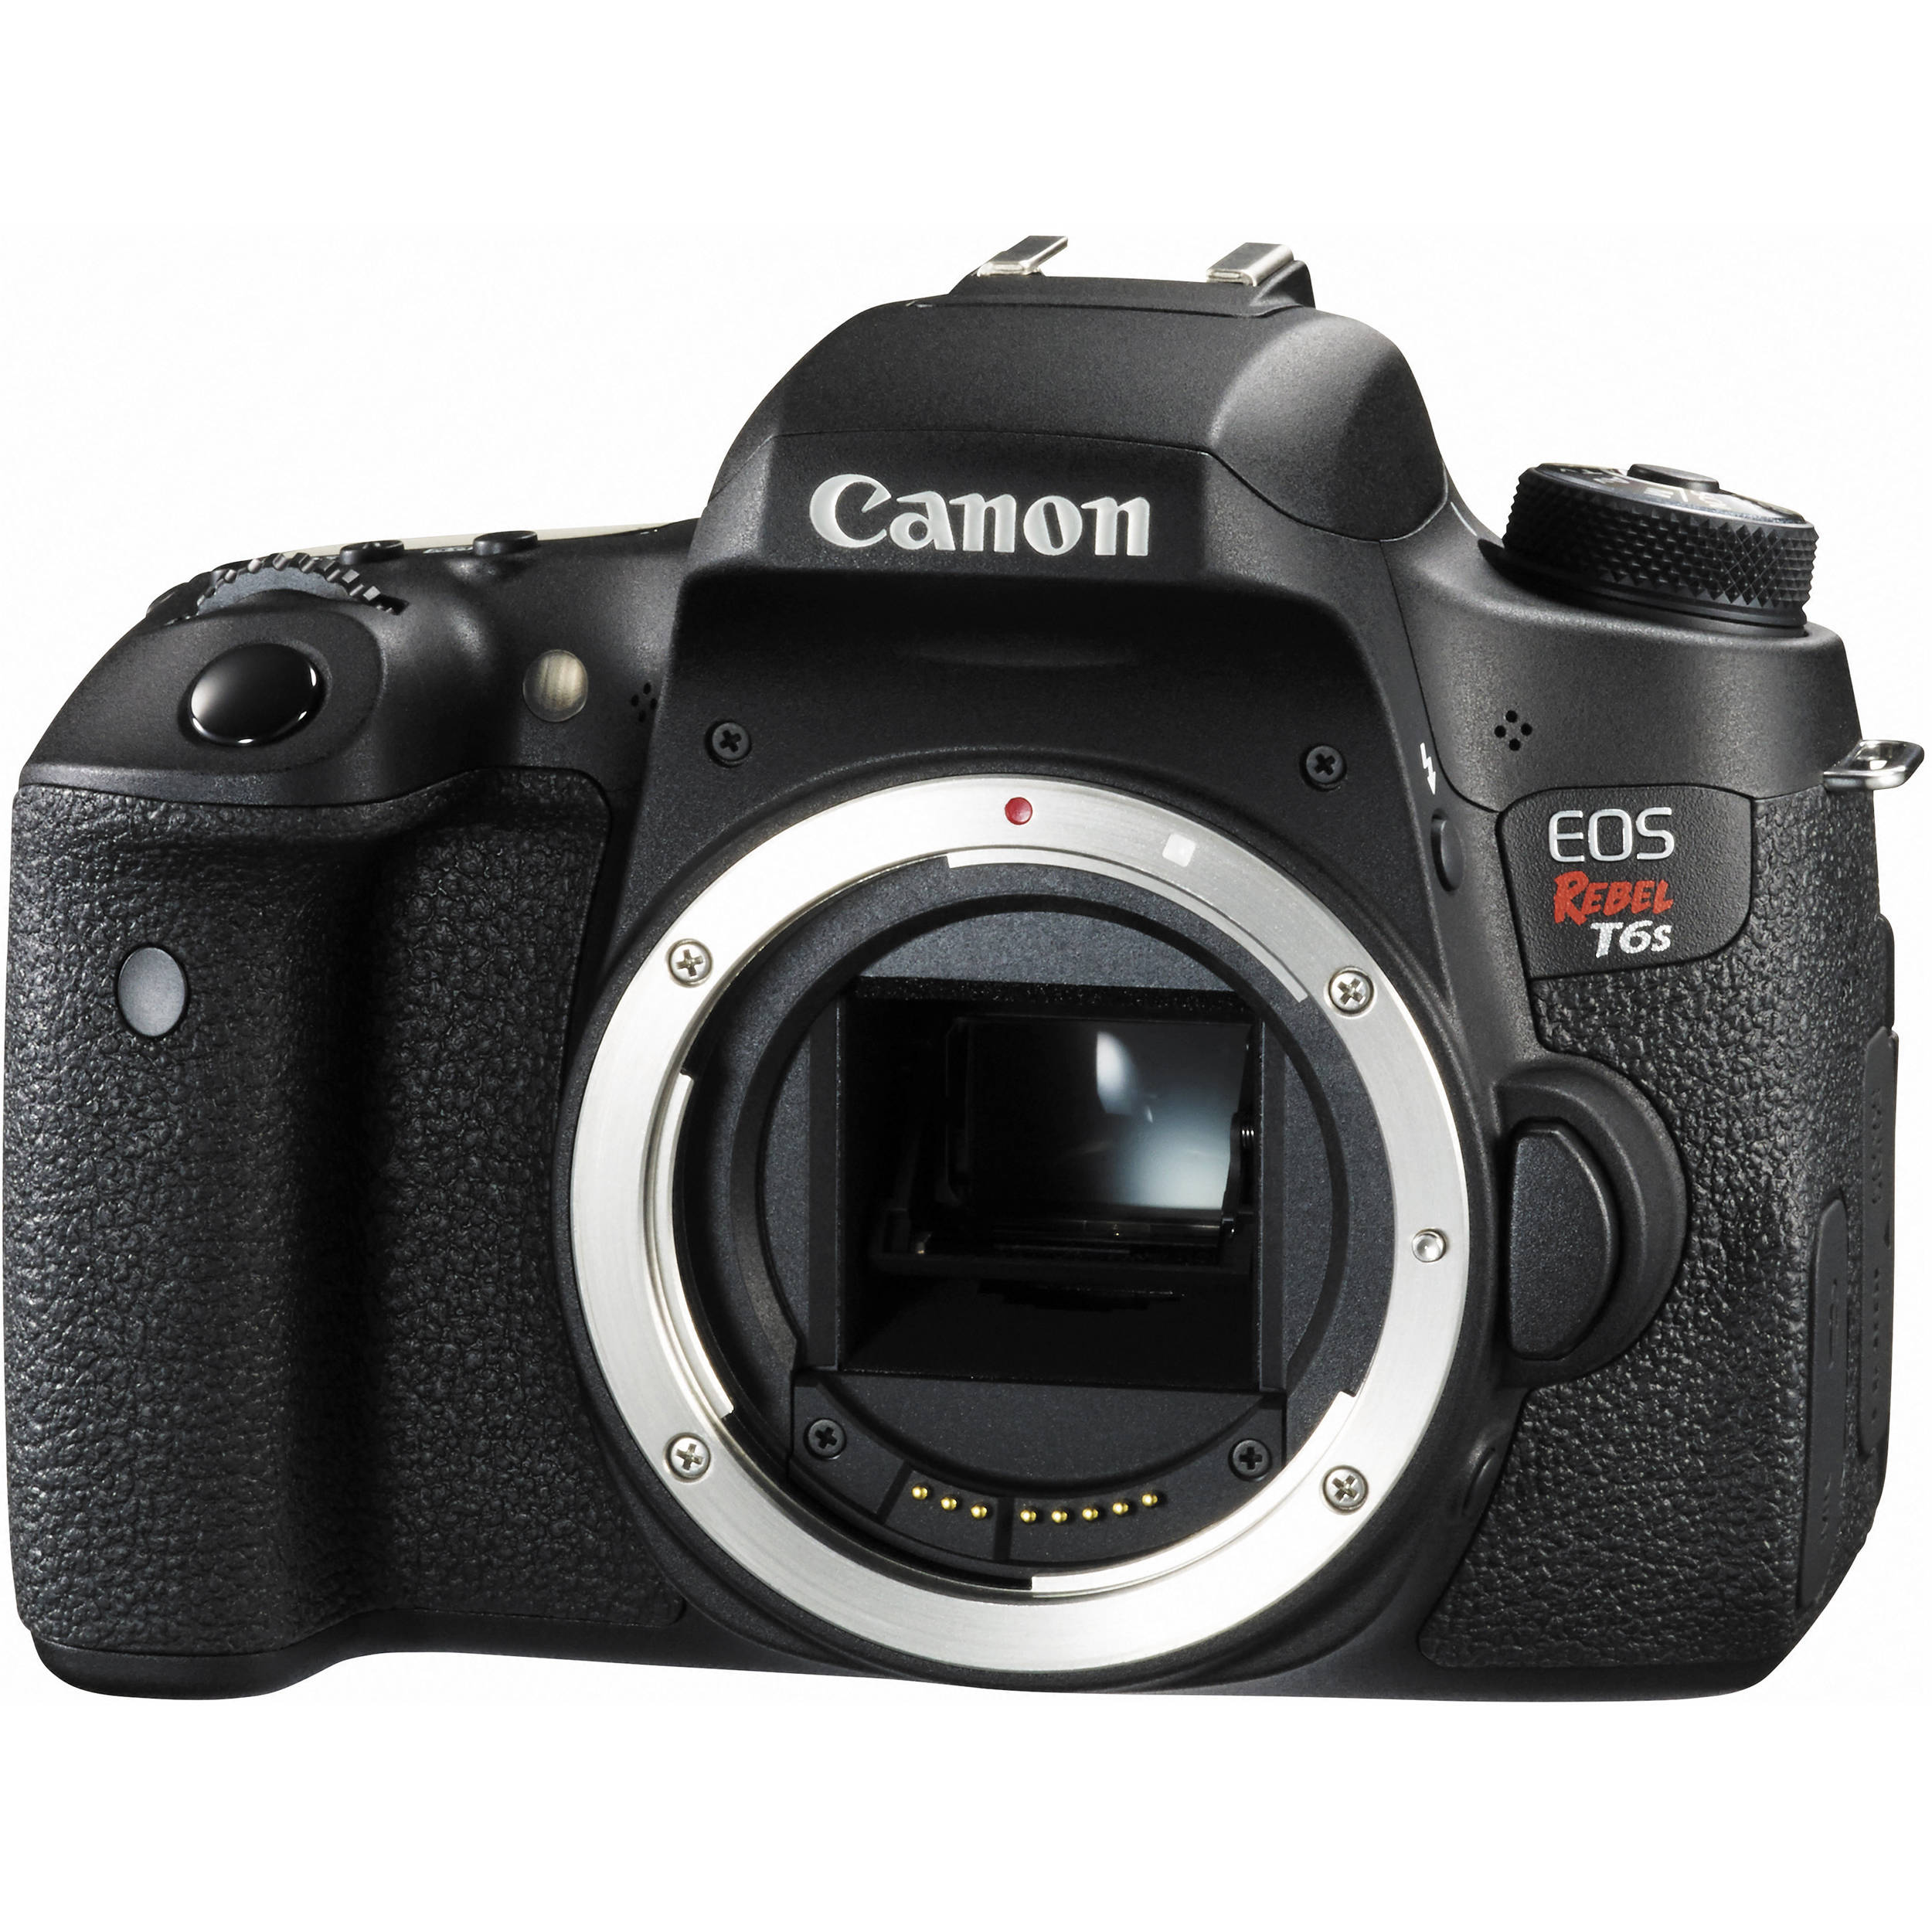 Camera What Is A Good Dslr Camera For A Beginner 9 recommended entry level dslr cameras bh explora canon eos rebel t6s camera